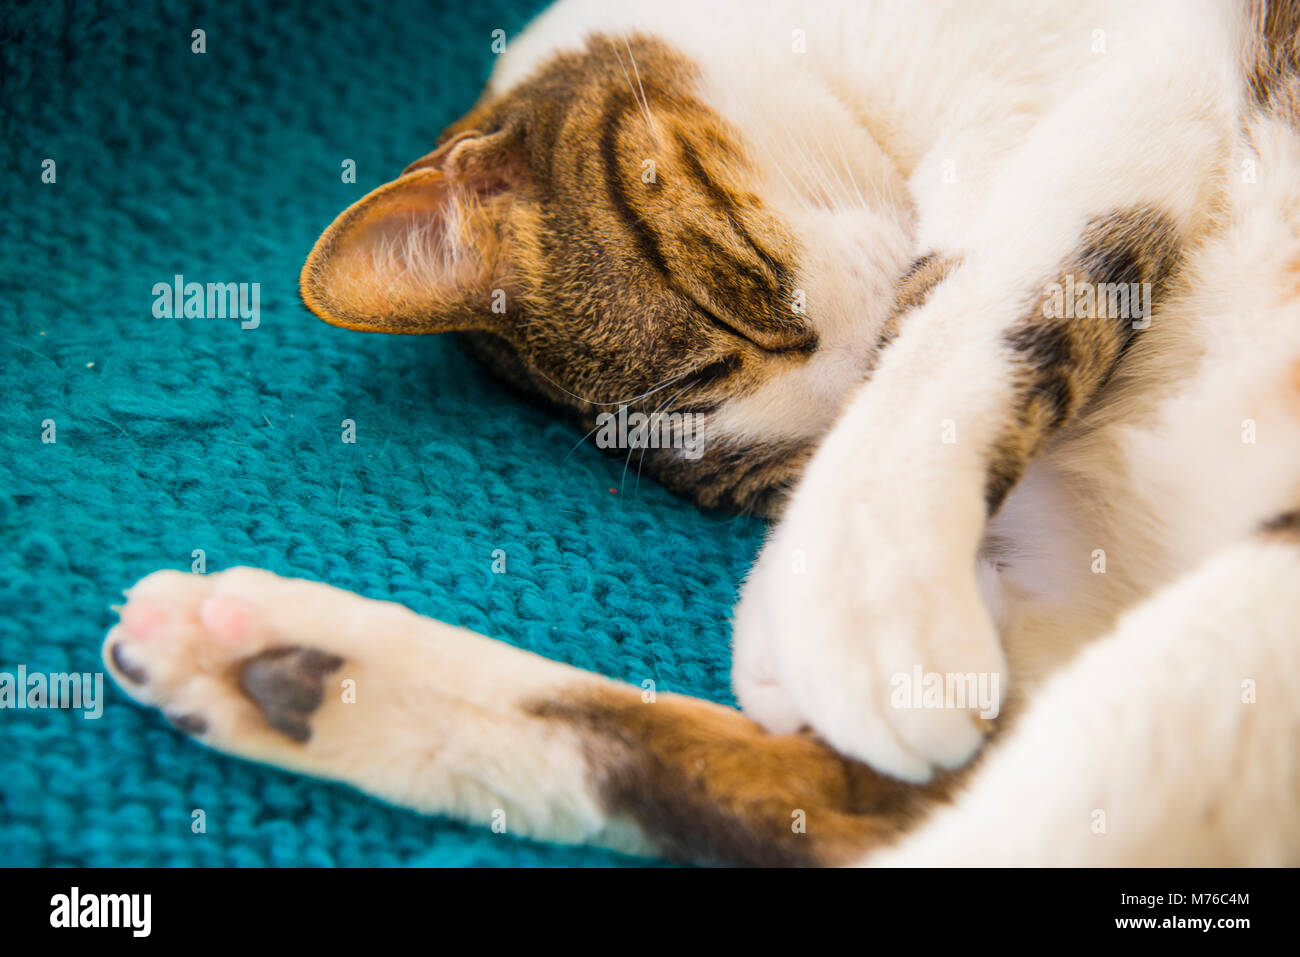 Tabby and white cat lying sleeping. - Stock Image